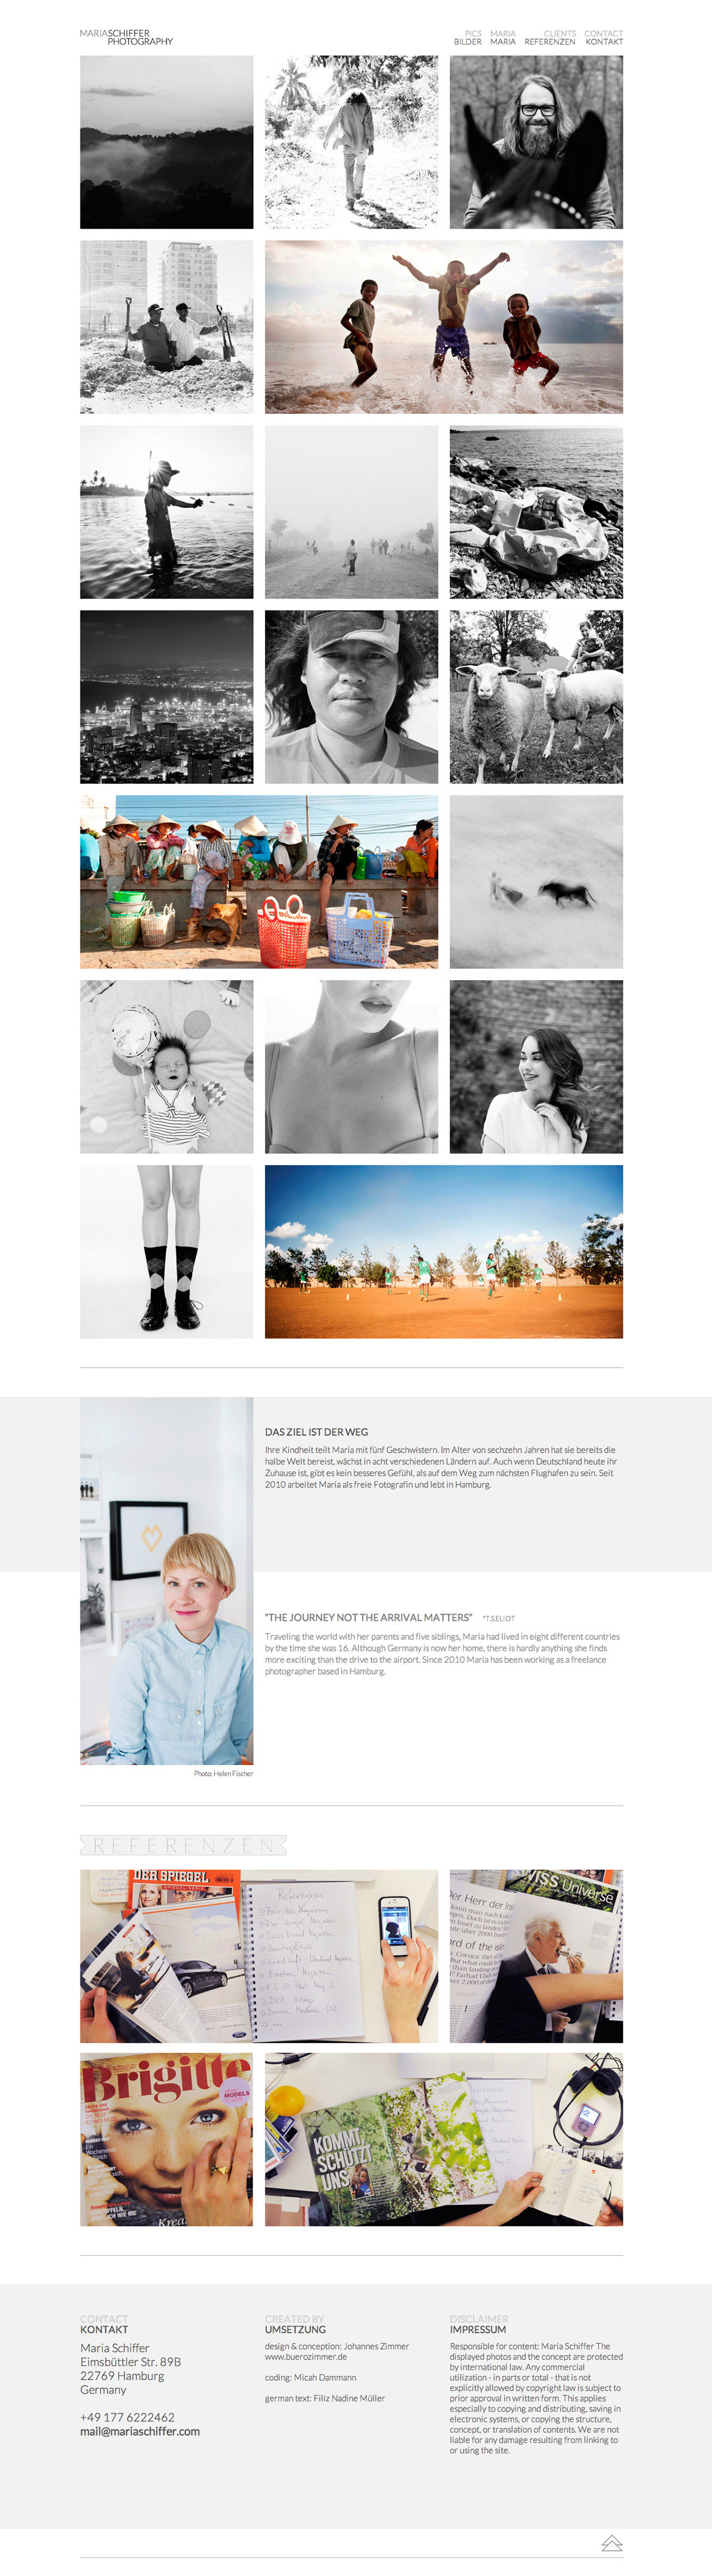 Maria Schiffer Photography Website Screenshot